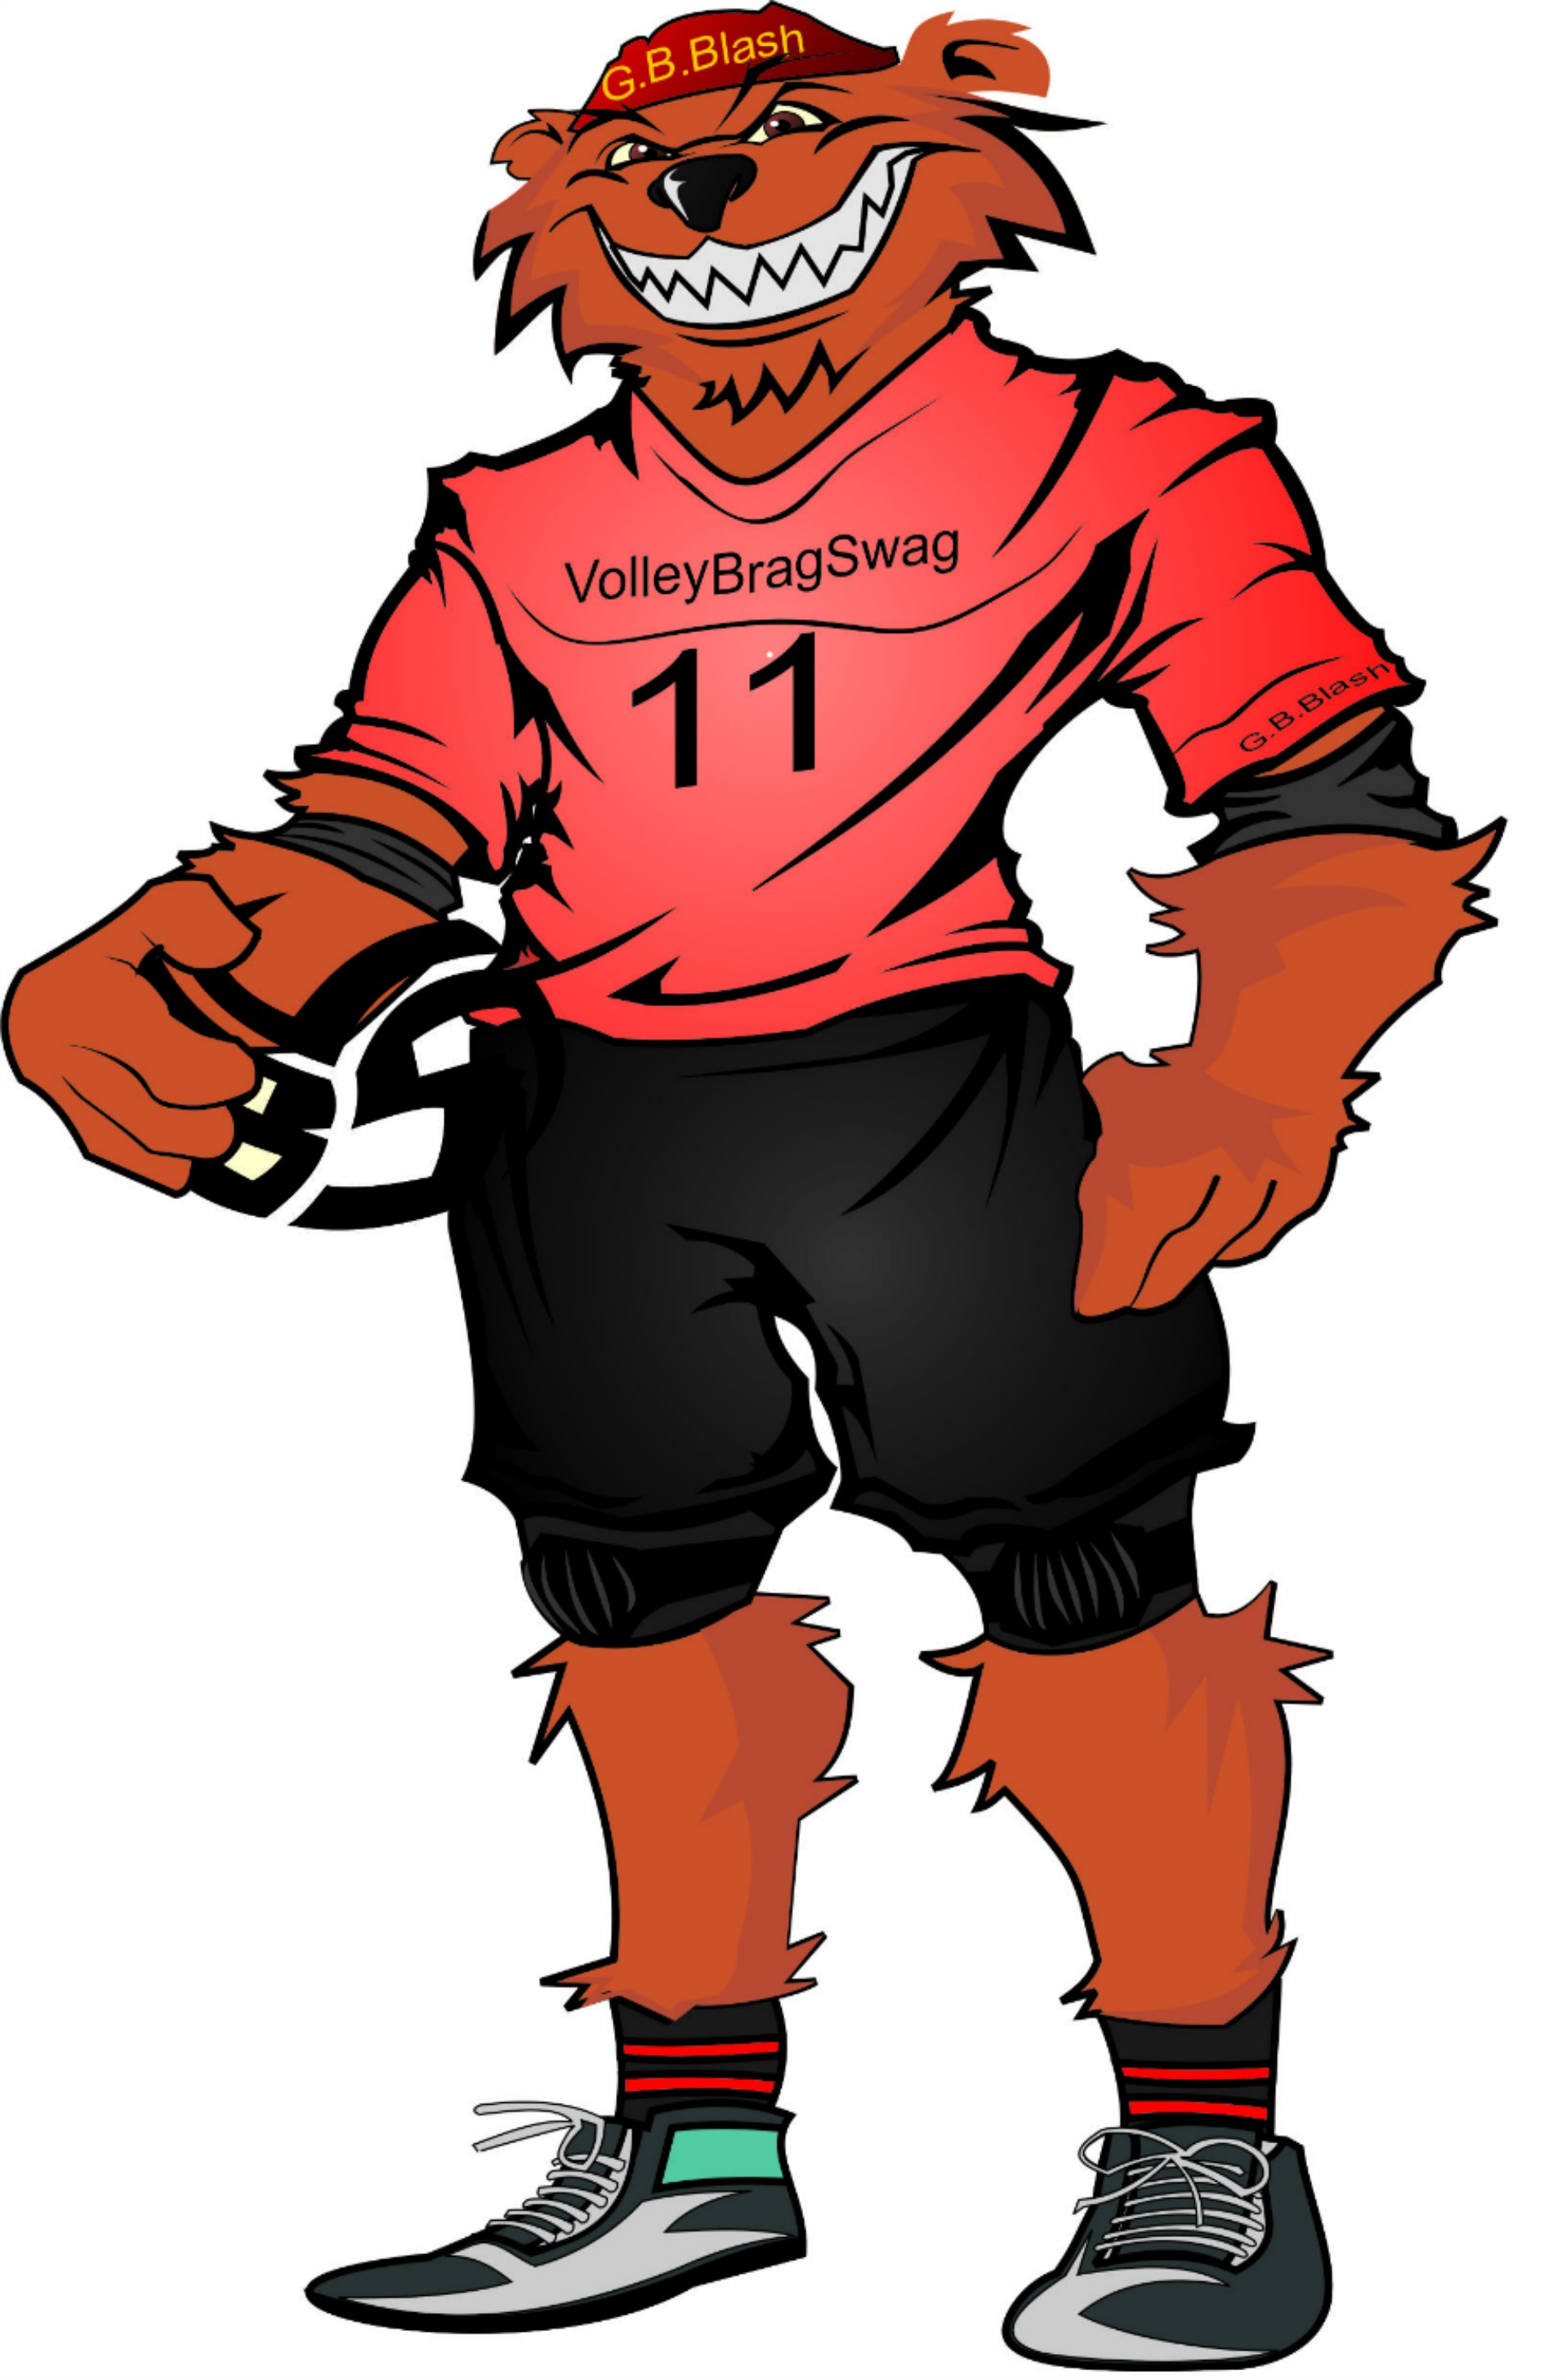 Mr G.B Blash, the Bear, wearing the #11 jersey below.